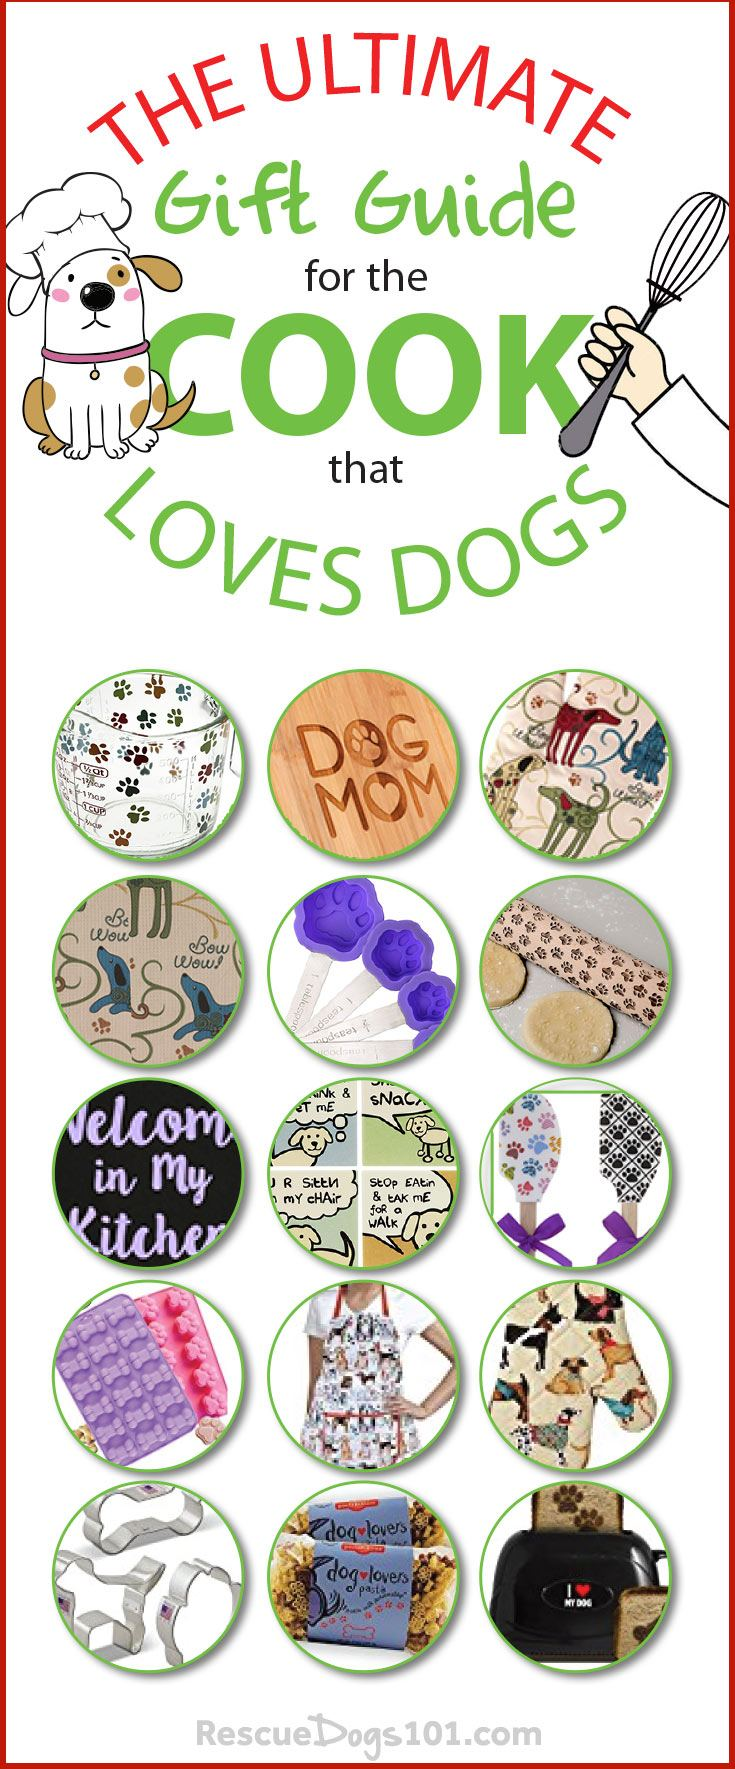 Dogs, dogs, and more dogs. We handpicked the top 15 gifts for the chef in your life that love dogs. #doggies #doglovers #dog #cook #chef #giftguide #giftguidefordoglover